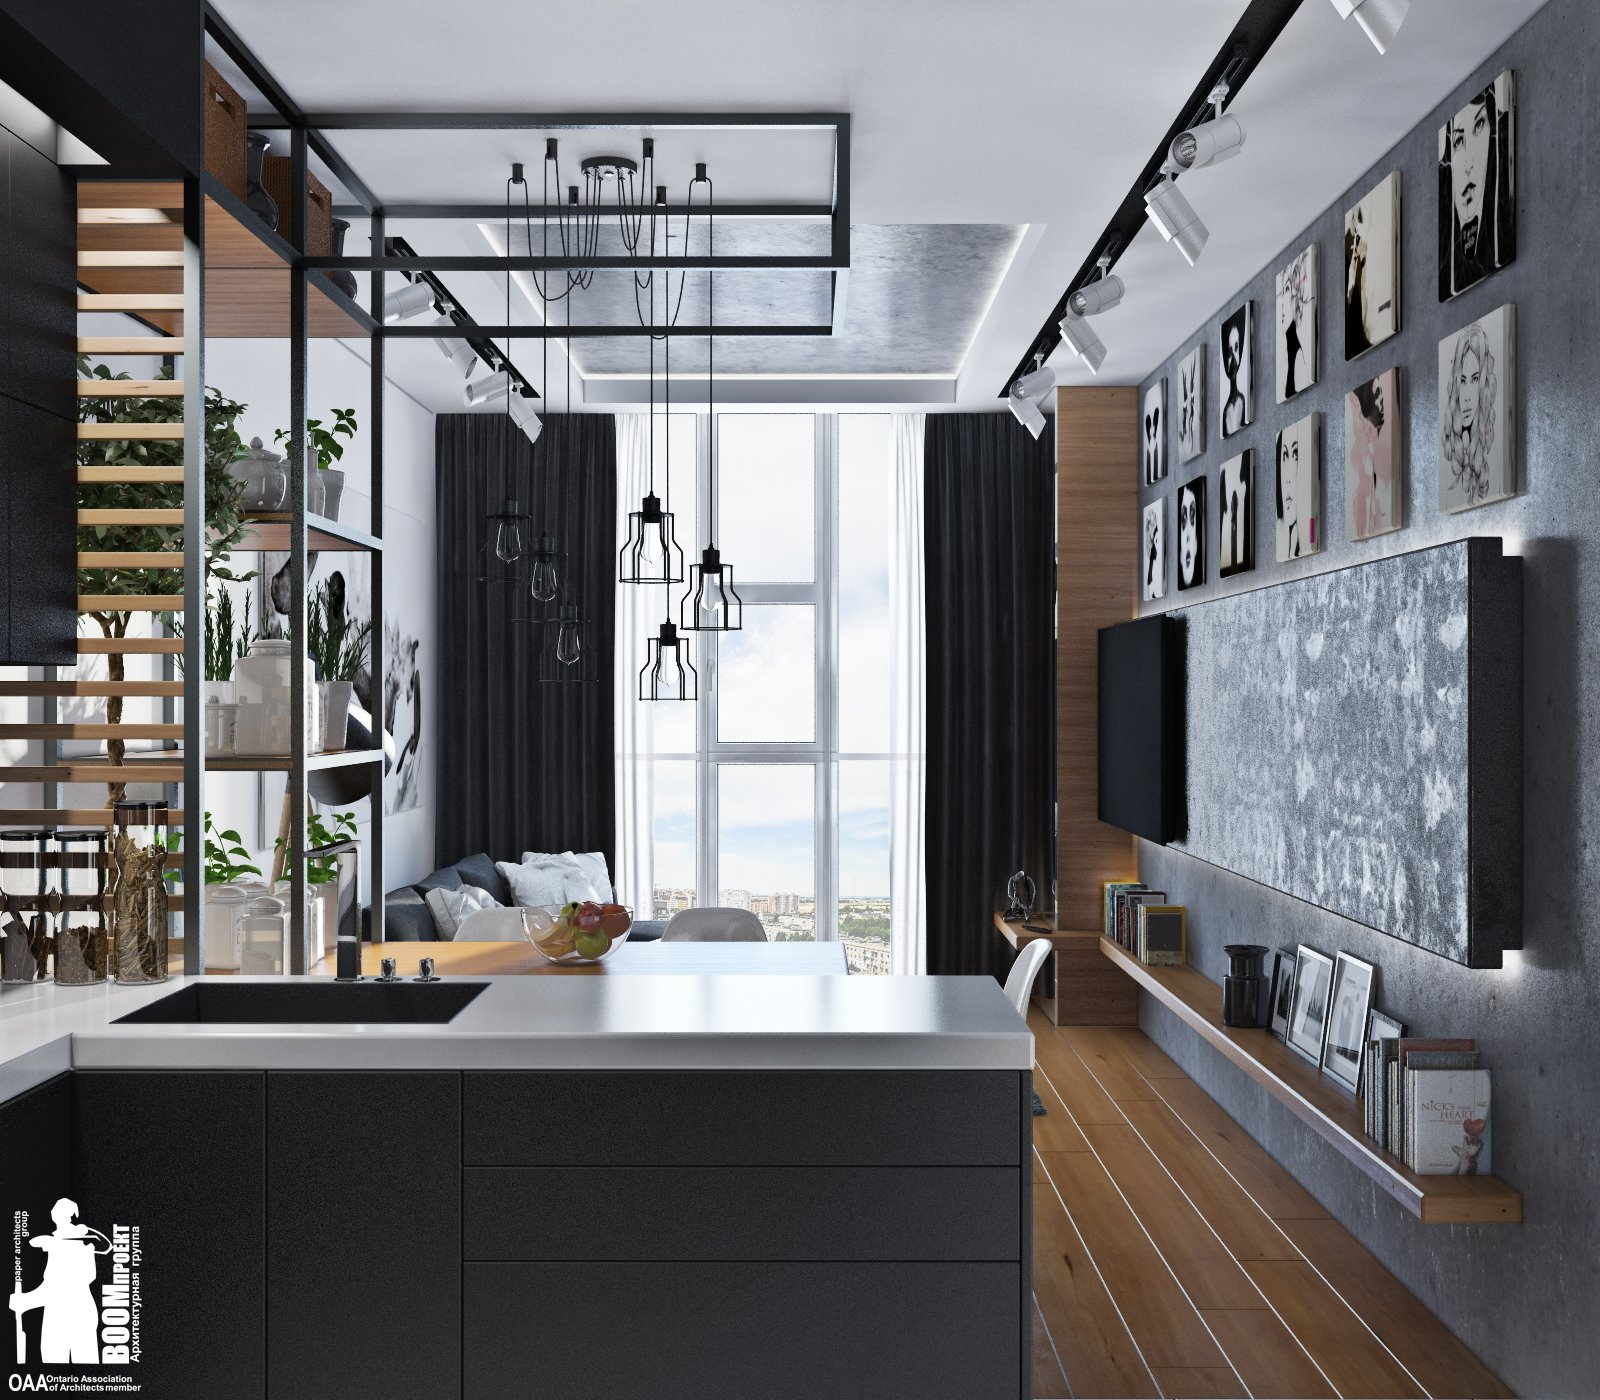 A loft kitchen united with a dining space and a living room